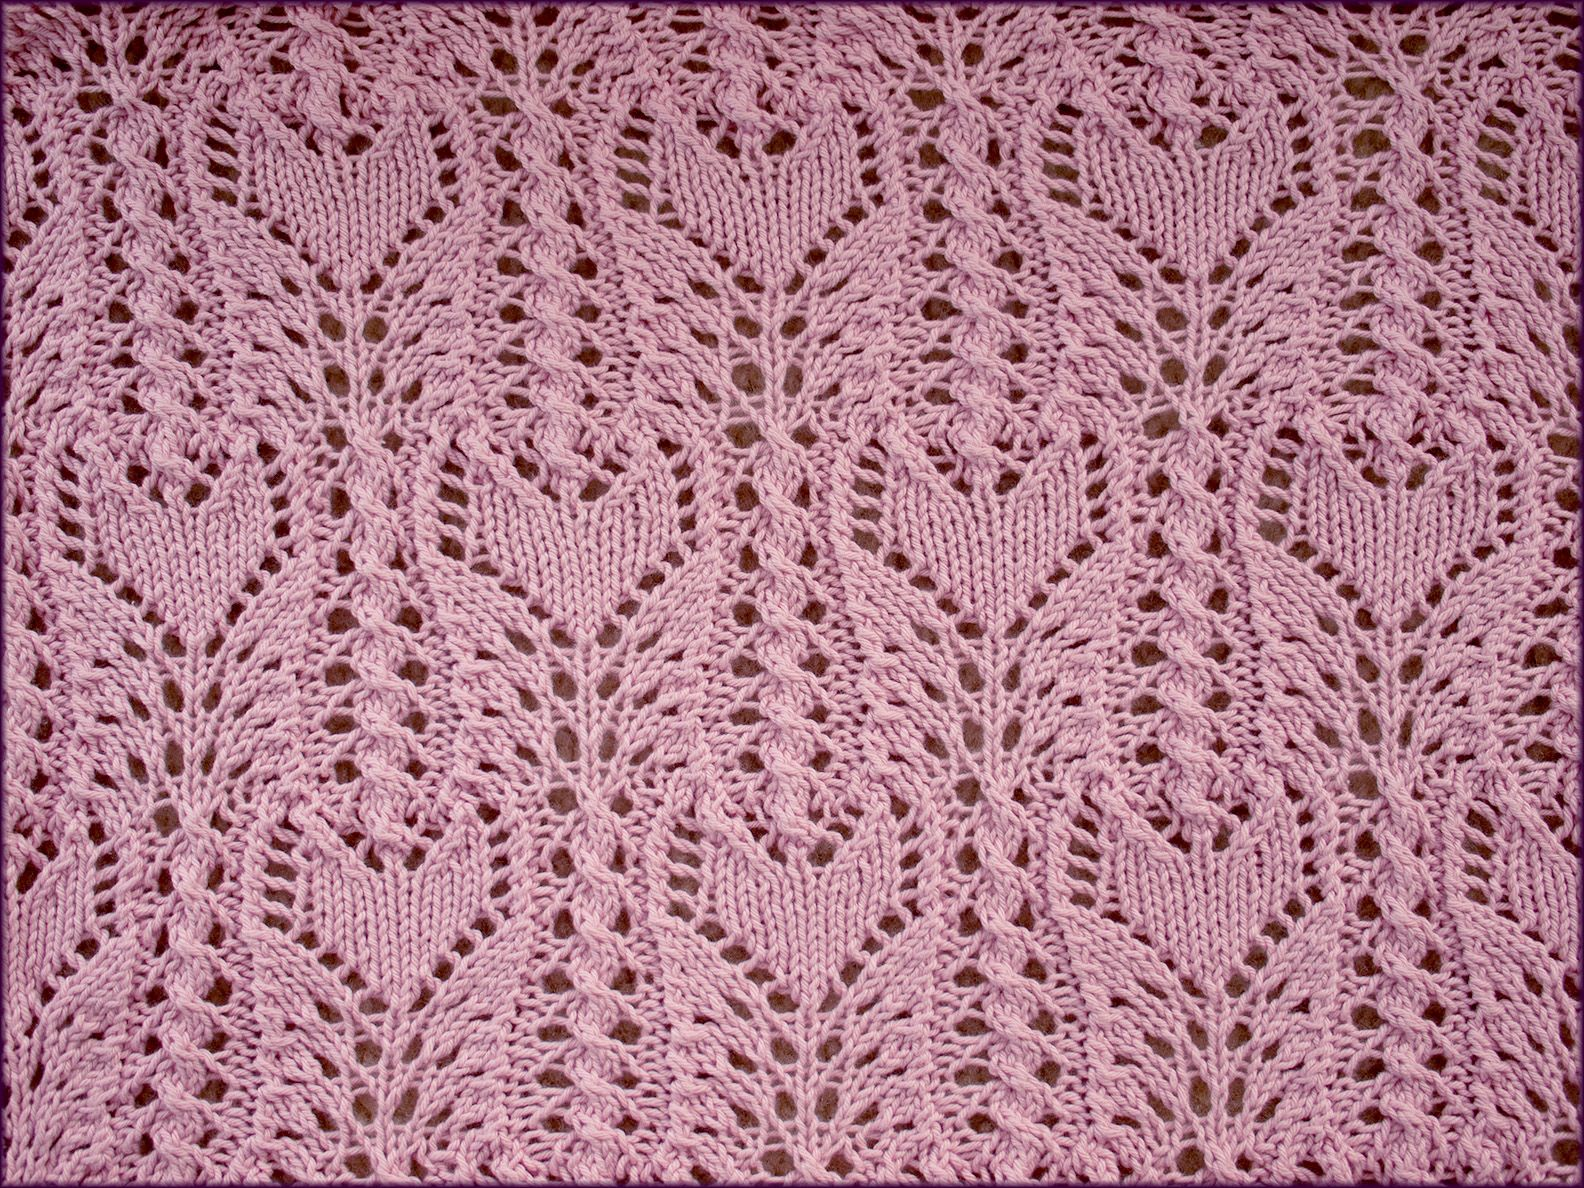 Ffct wrap knitting pattern this features tulip lace flowers ffct wrap knitting pattern this features tulip lace flowers topping tightly cabled stems and set bankloansurffo Gallery